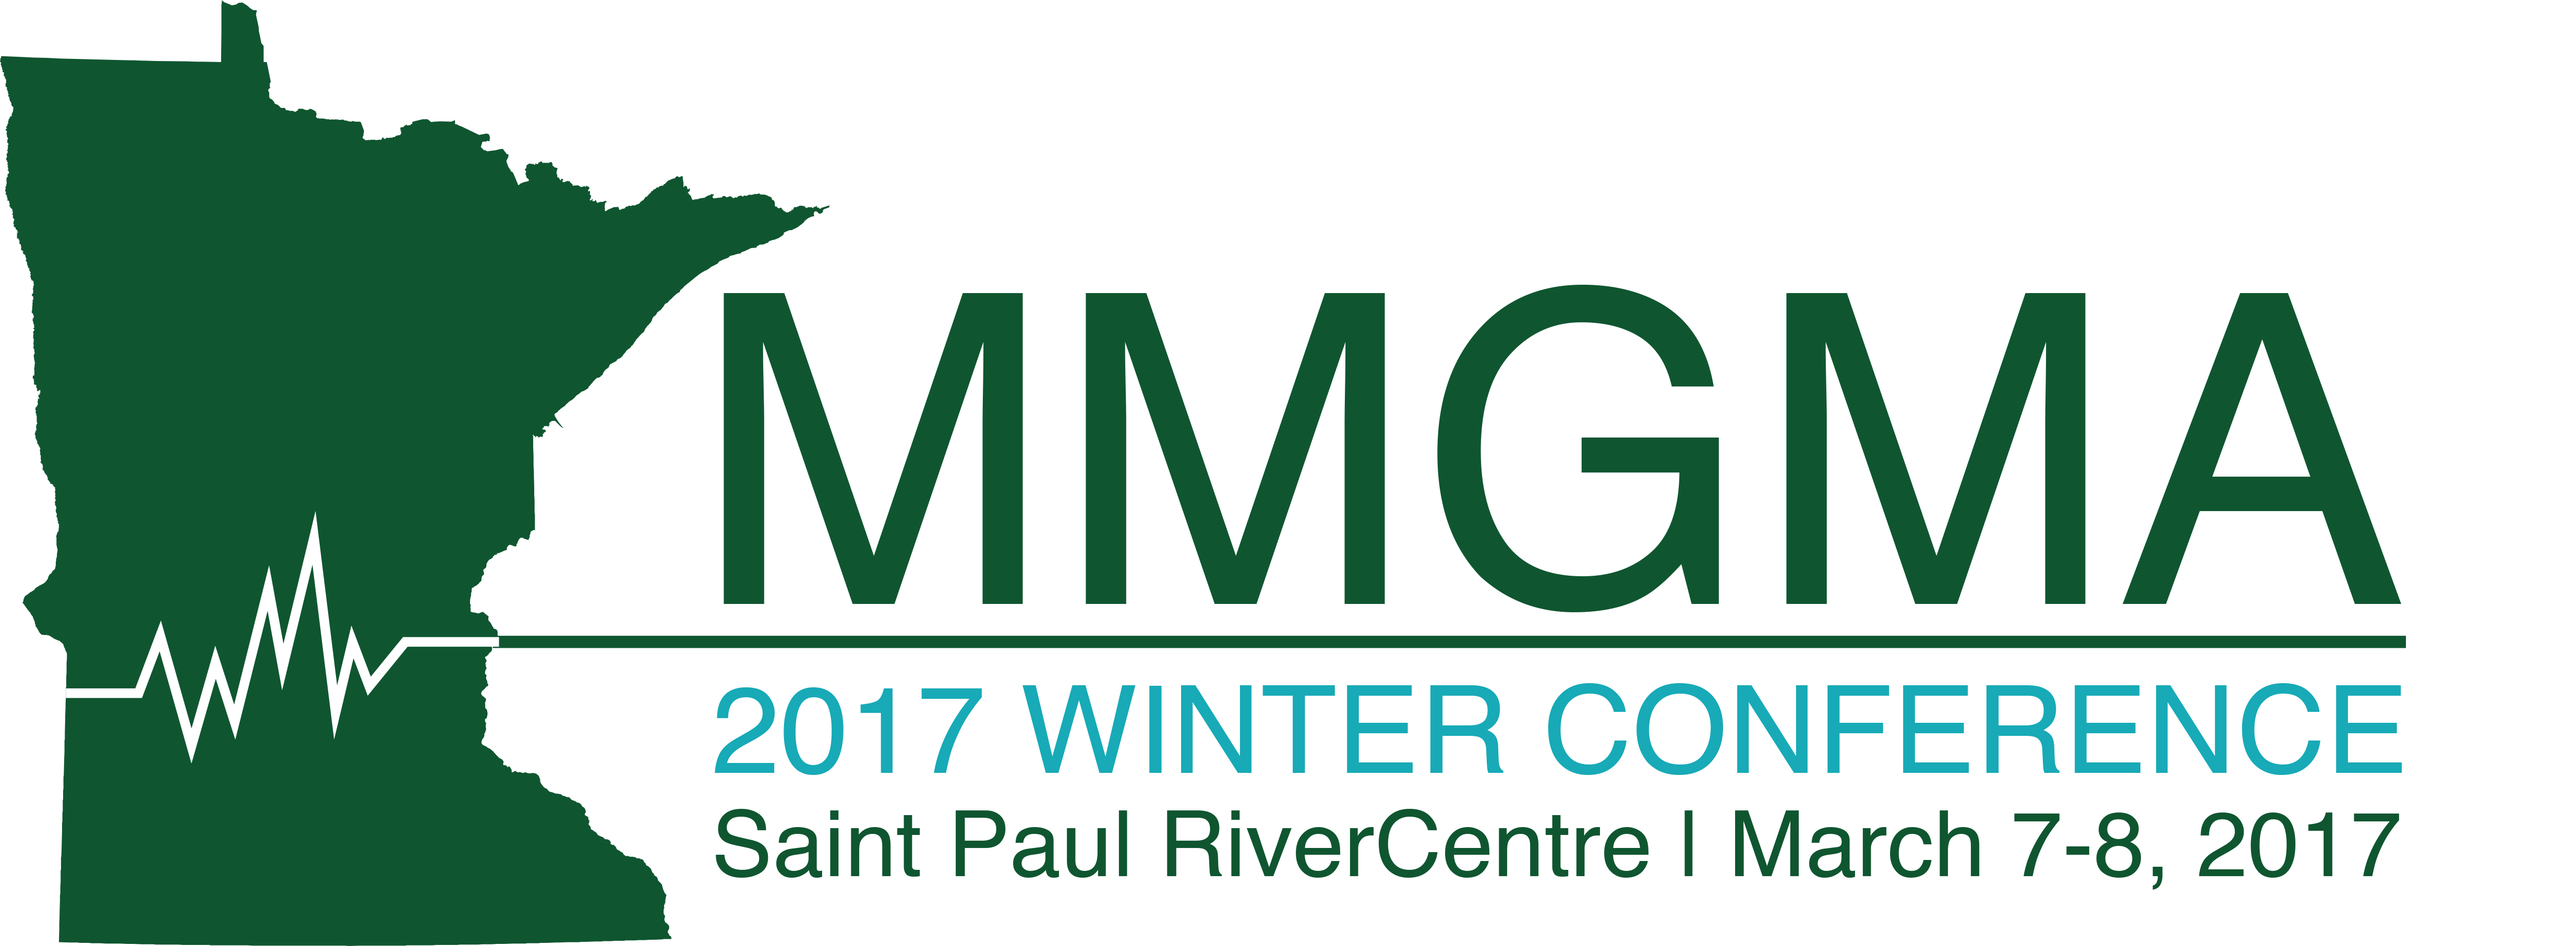 MMGMA Winter Conference at the St. Paul RiverCentre, March 7-8, 2017